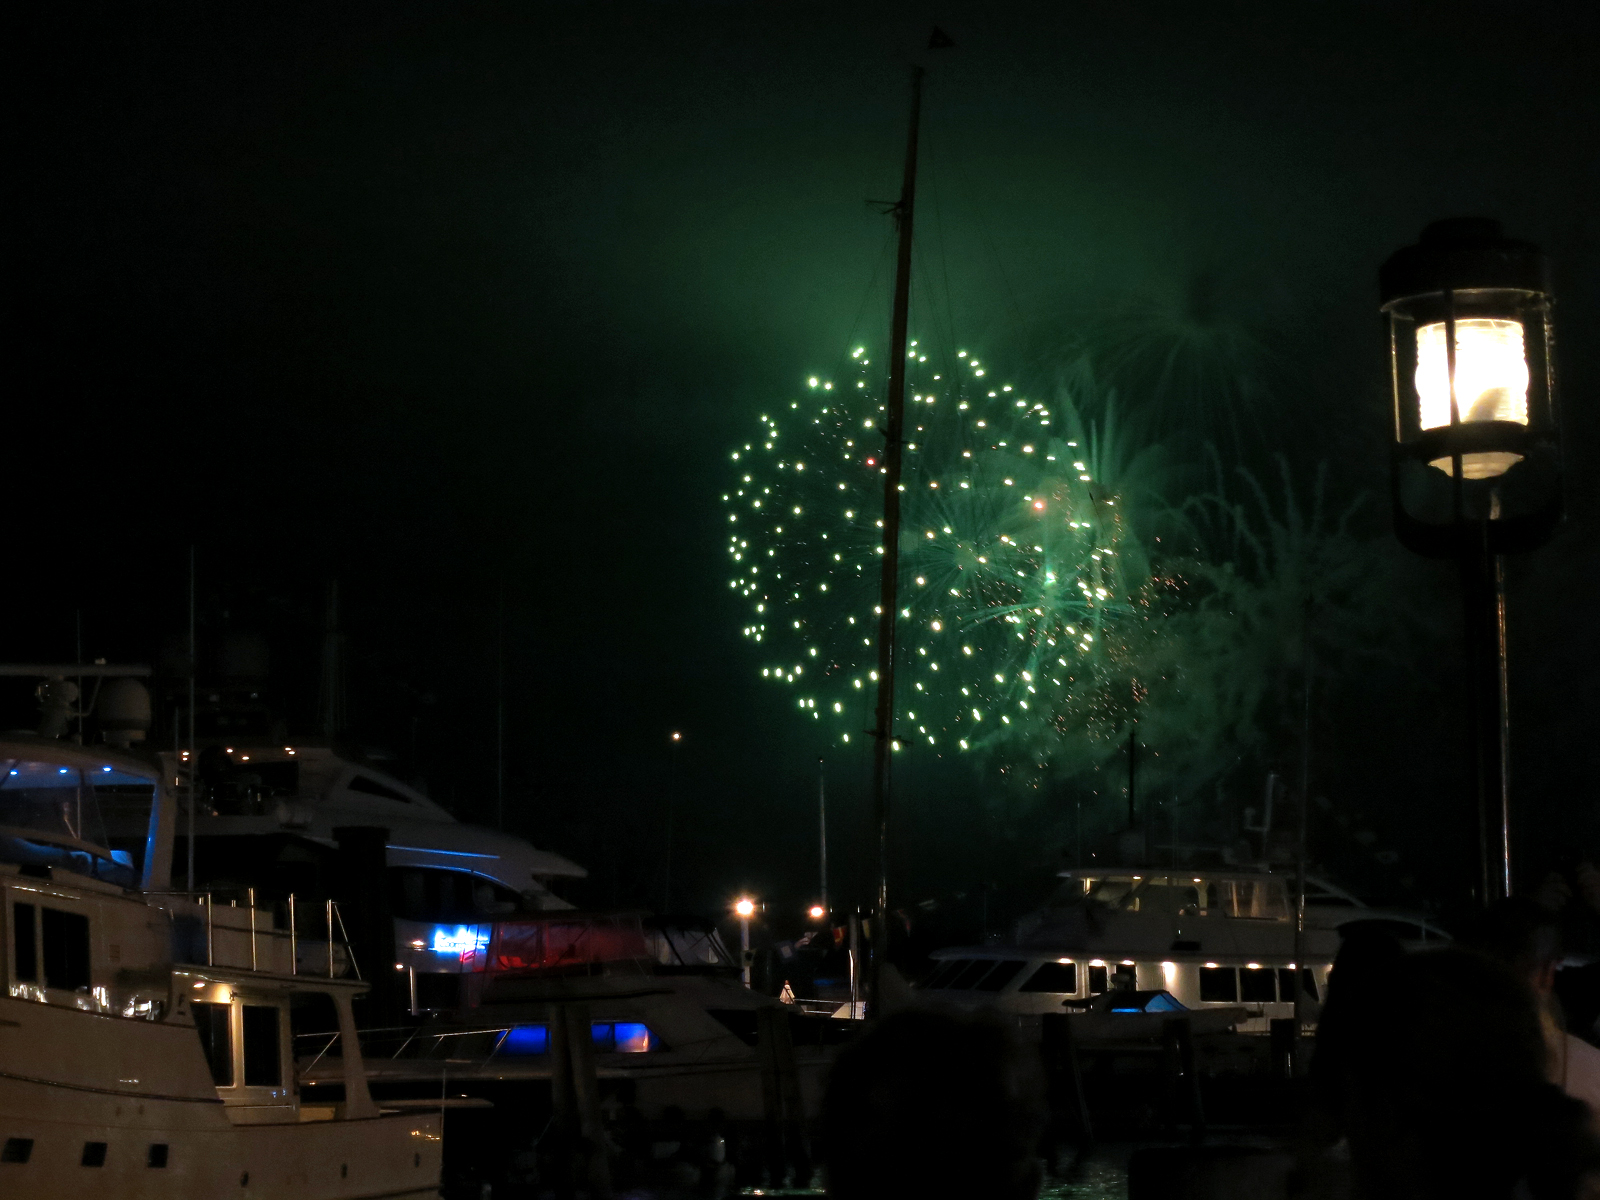 ROCKET'S RED GLARE OVER NEWPORT HARBOR - live. travel. adventure. bless. | Green firework sparkling over Newport Harbor during the Independence Day fireworks display in Newport, RI. Happy 4th of July!